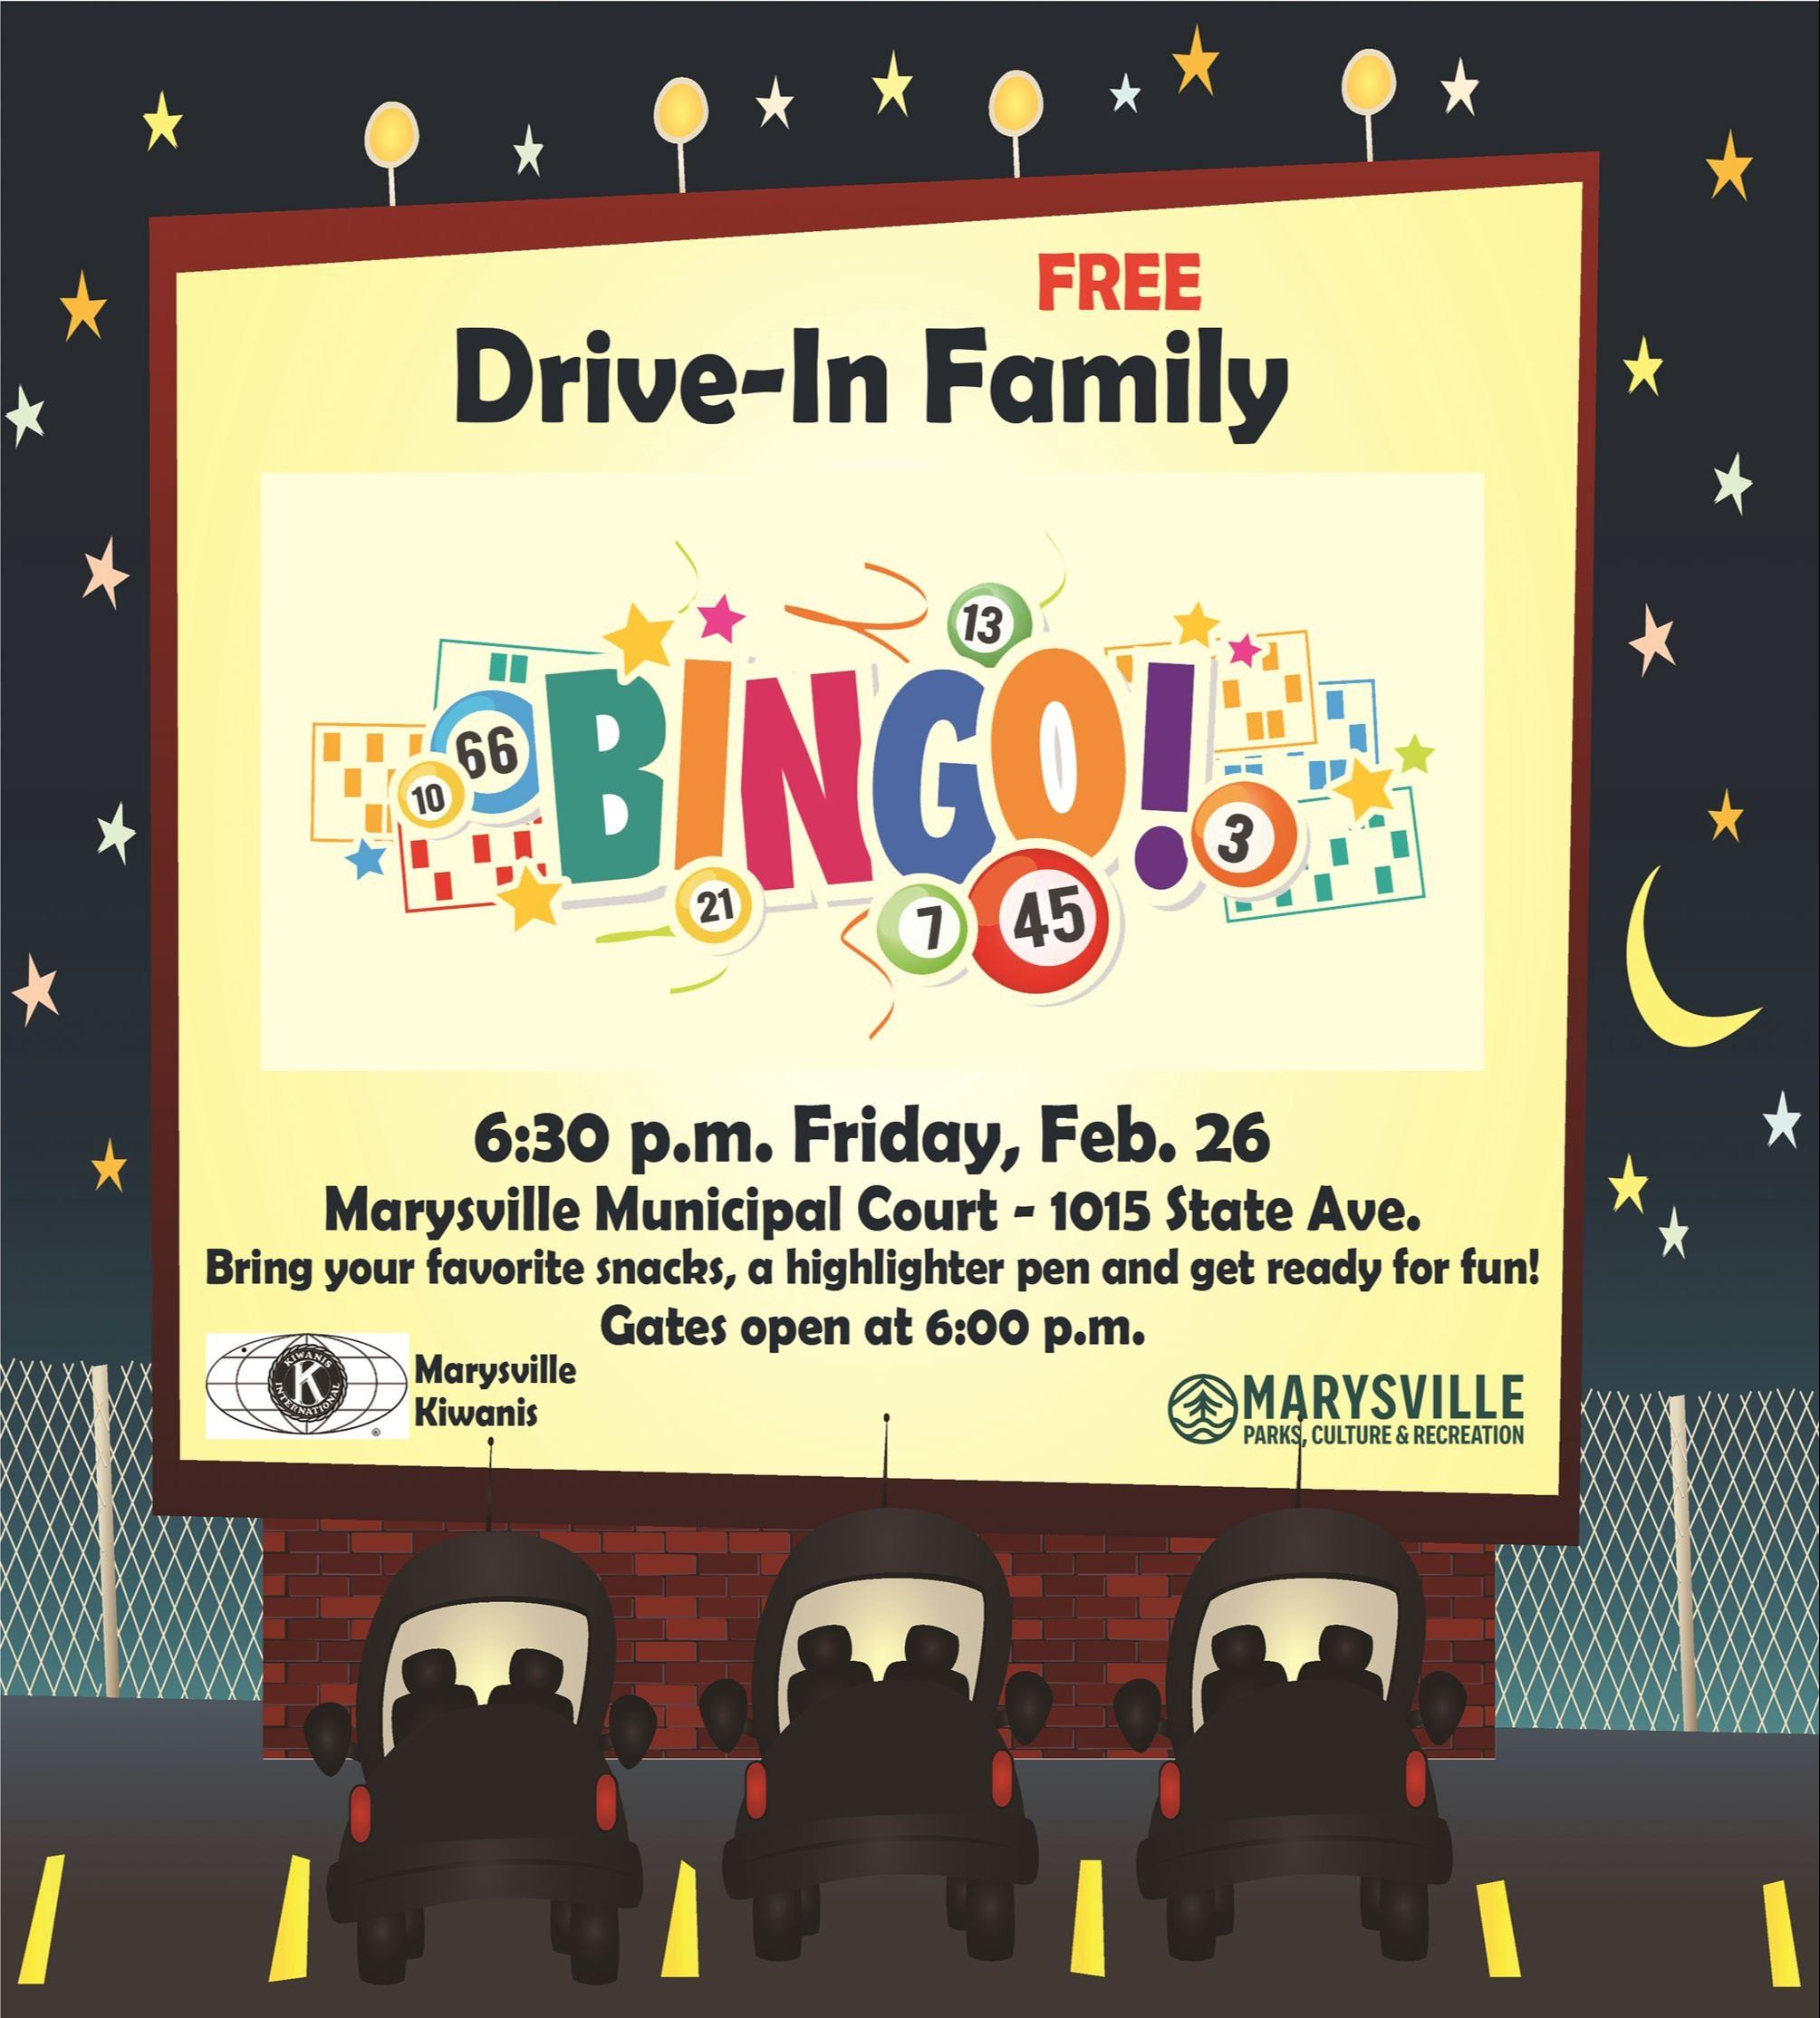 Drive-In Bingo free community event Friday, Feb. 26 at 6:30pm